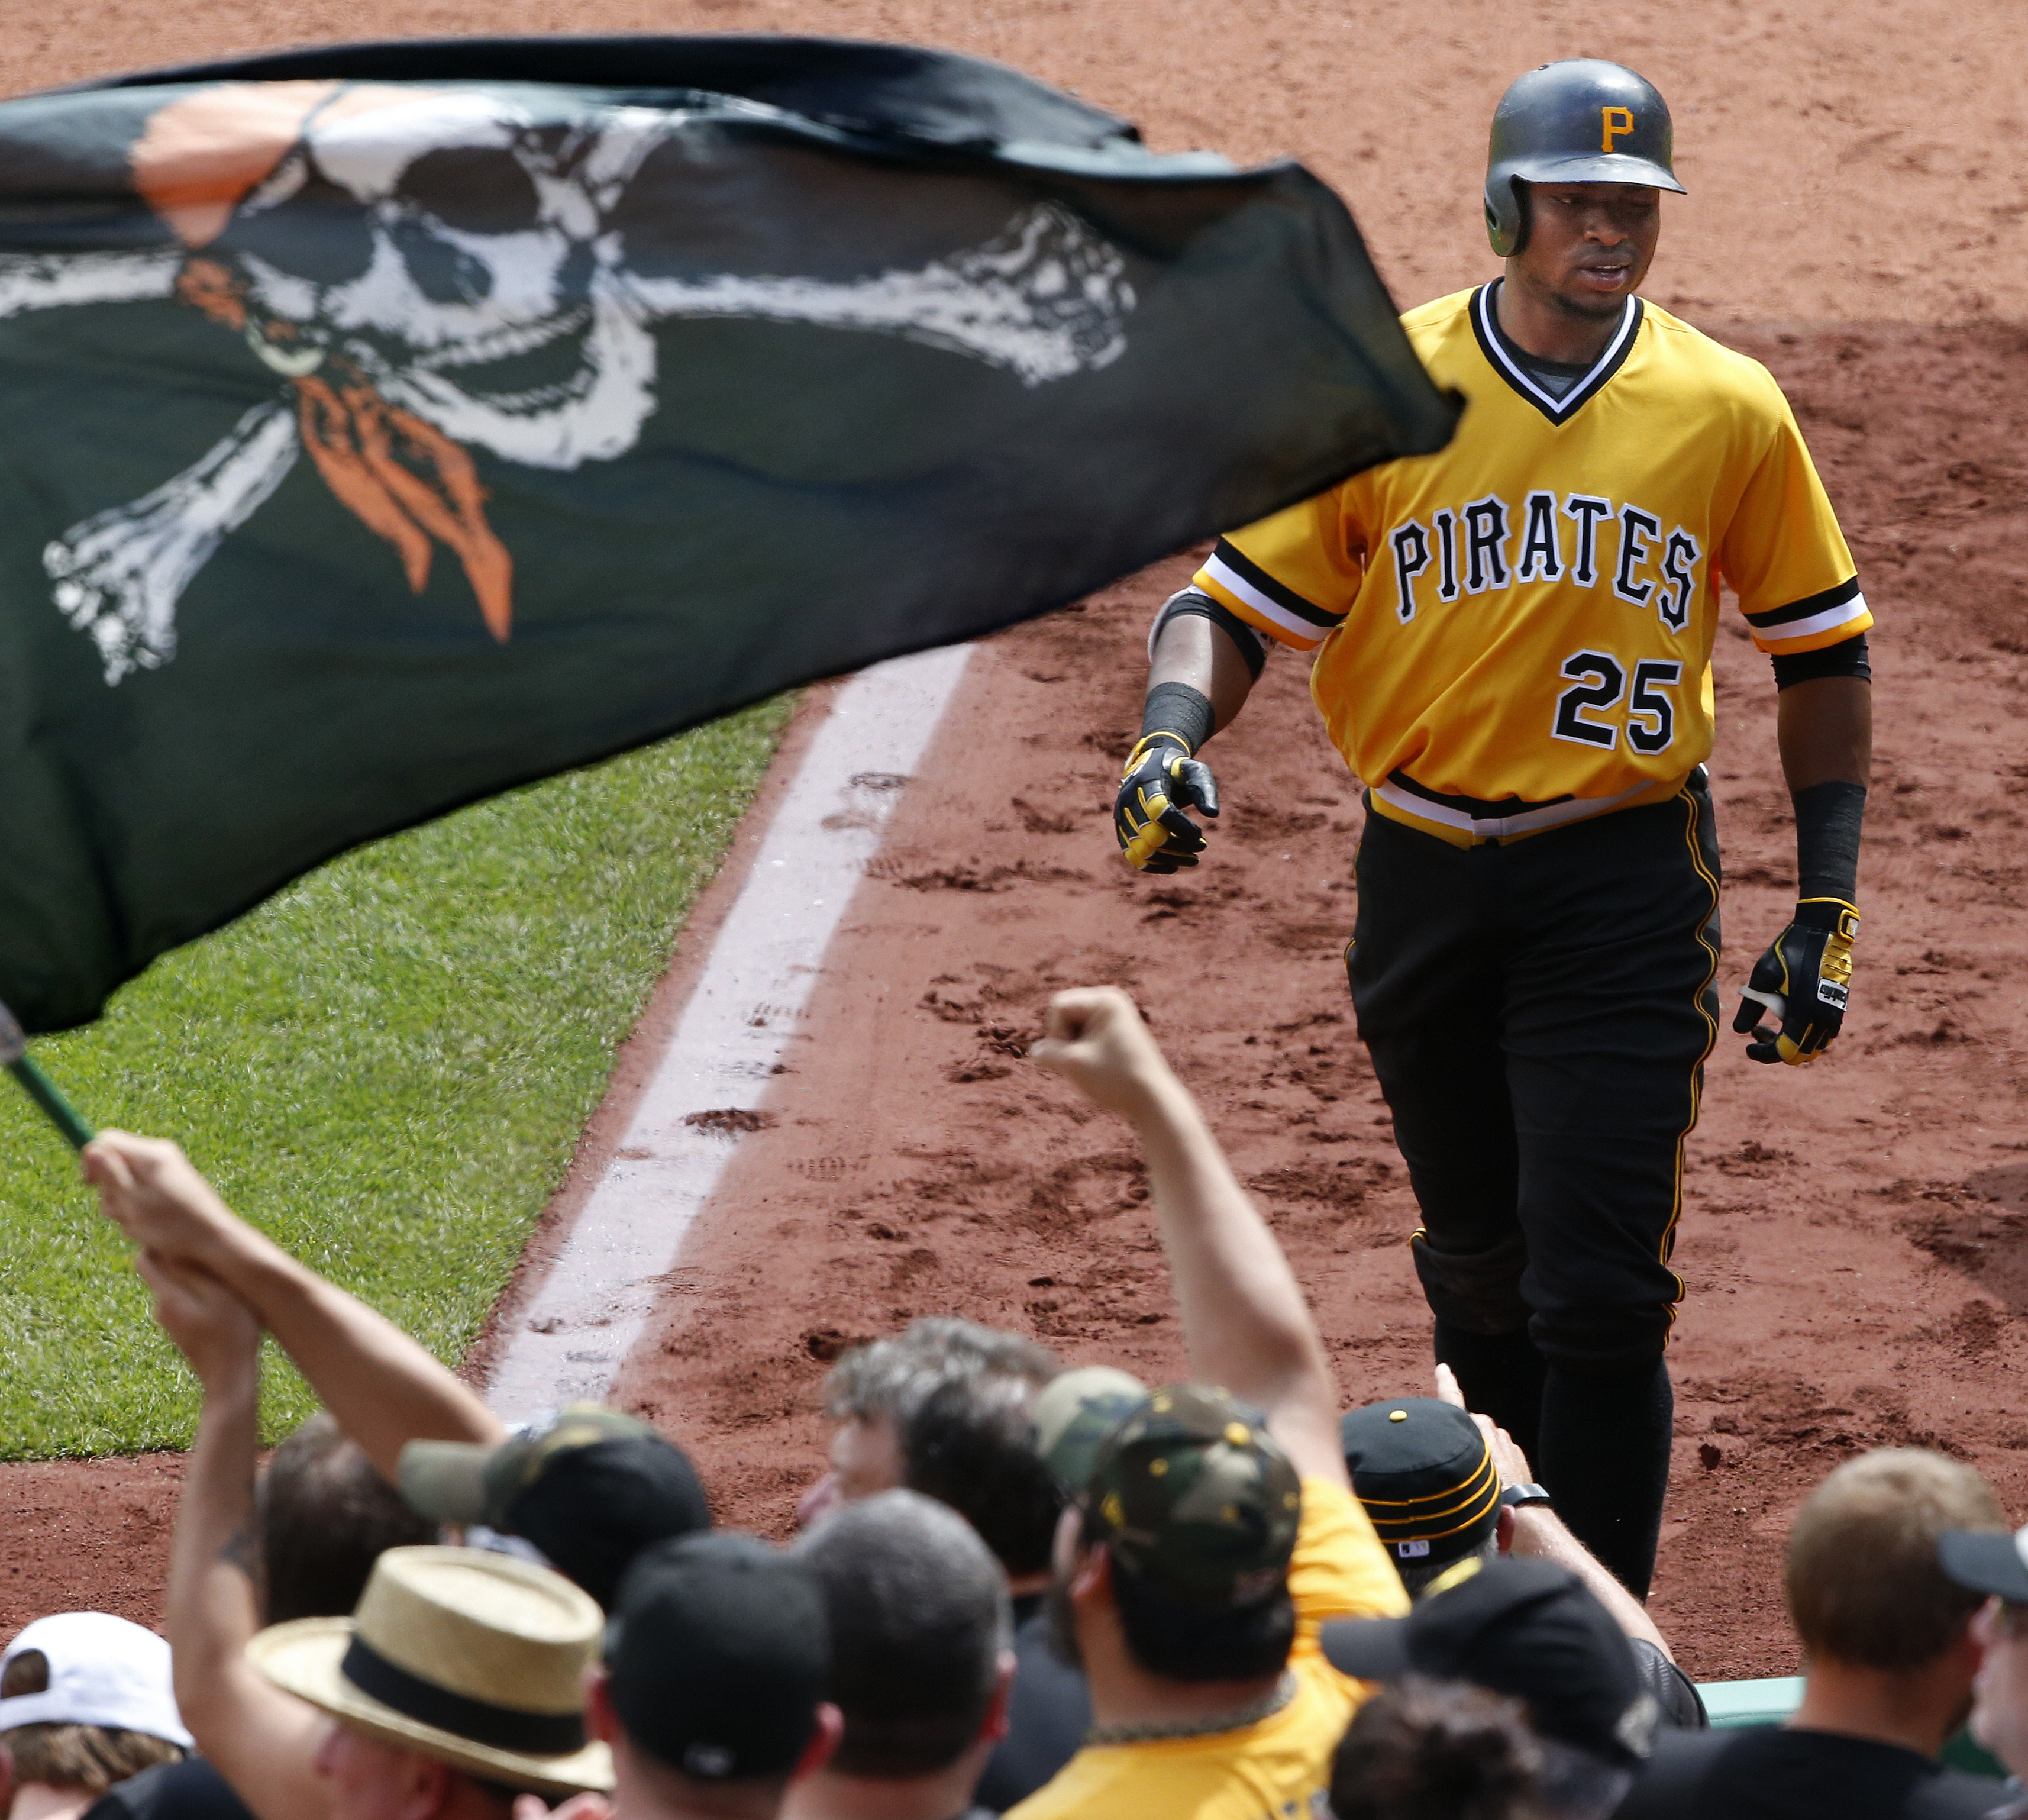 Pittsburgh Pirates' Gregory Polanco returns to the dugout after hitting a solo home run off Cincinnati Reds pitcher Tim Adleman during the fifth inning of a baseball game in Pittsburgh, Sunday, May 1, 2016. (AP Photo/Gene J. Puskar)